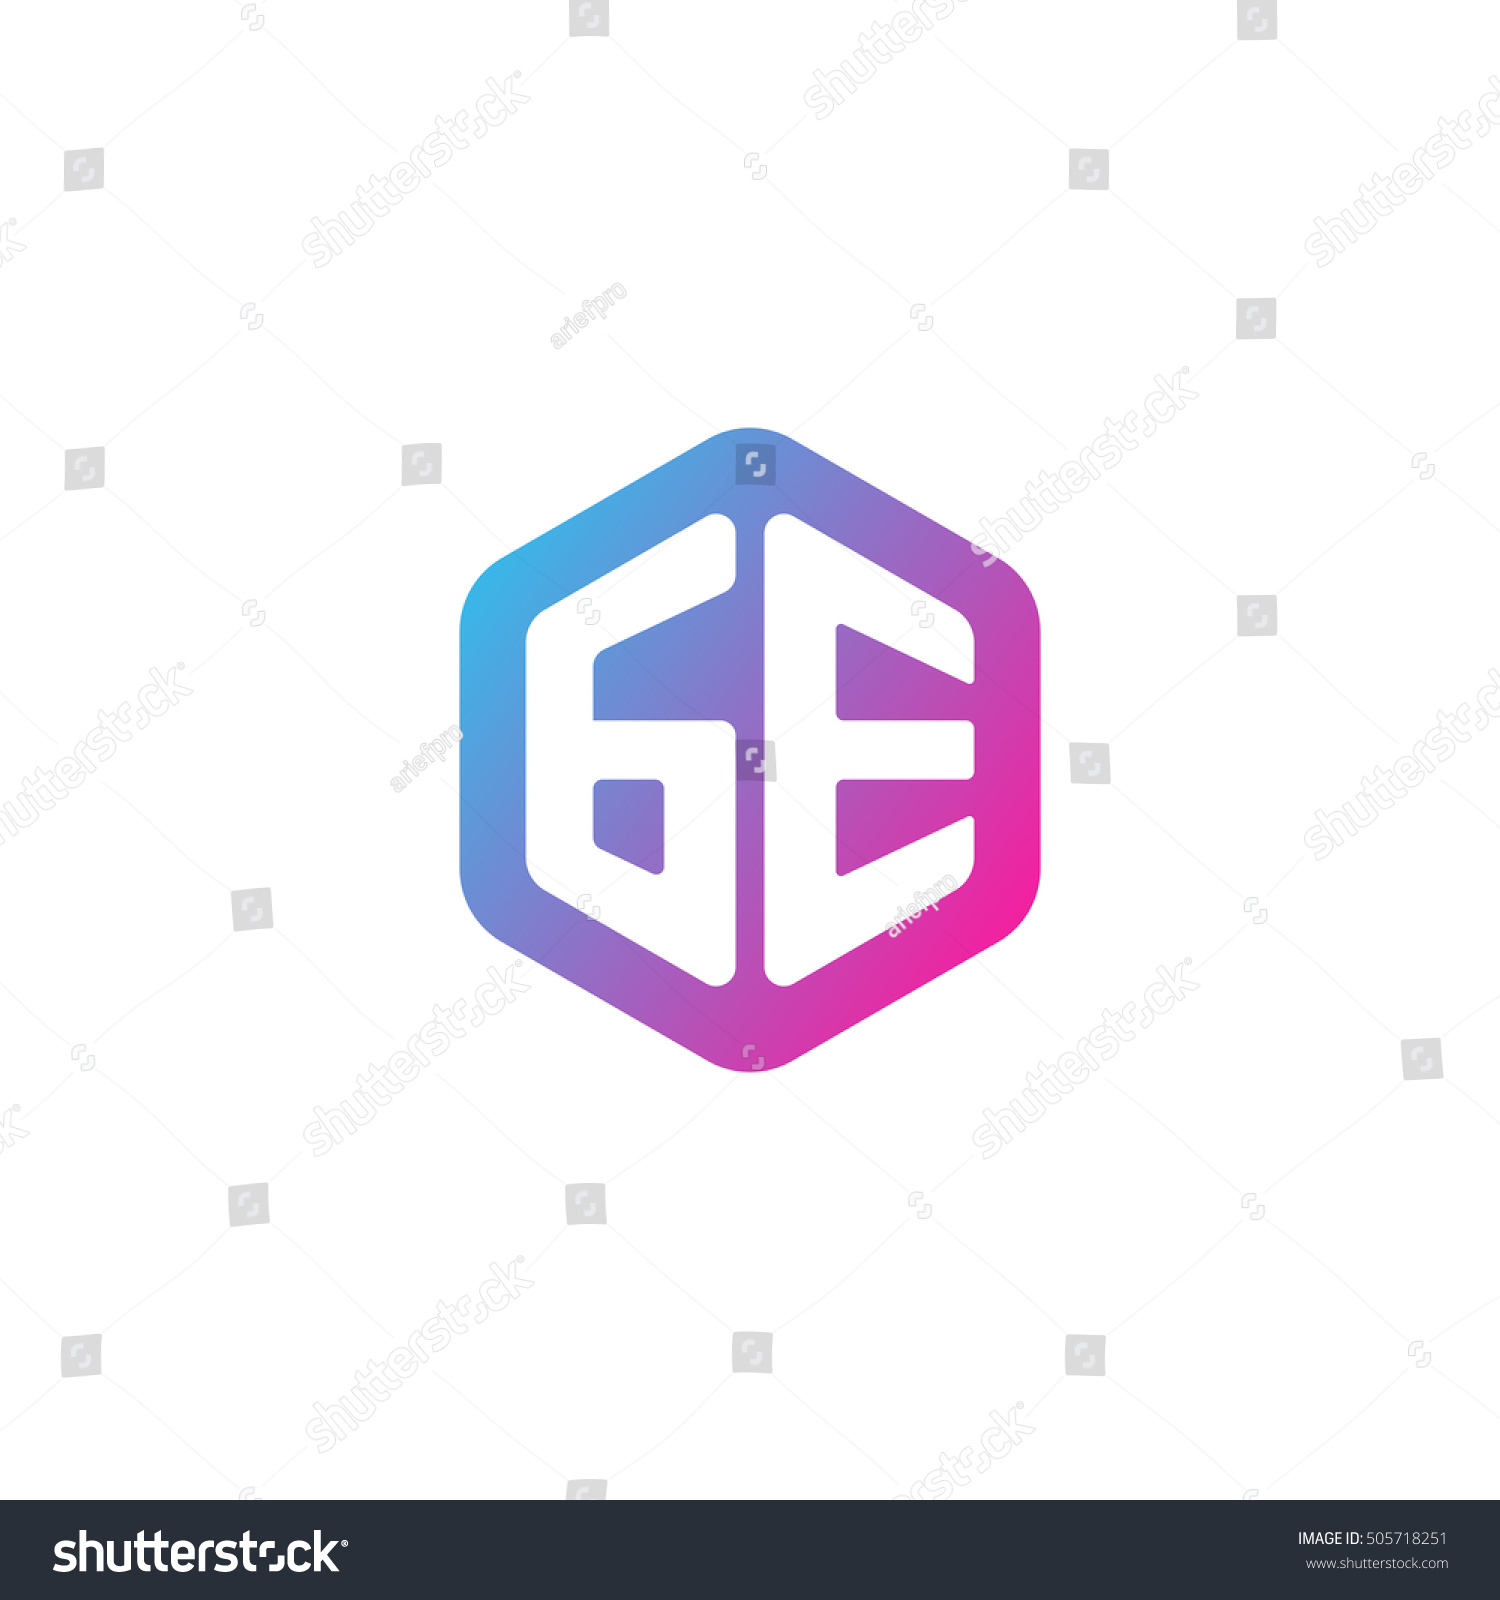 Initial letters ge rounded hexagon shape stock vector 505718251 initial letters ge rounded hexagon shape blue pink purple simple modern logo biocorpaavc Gallery